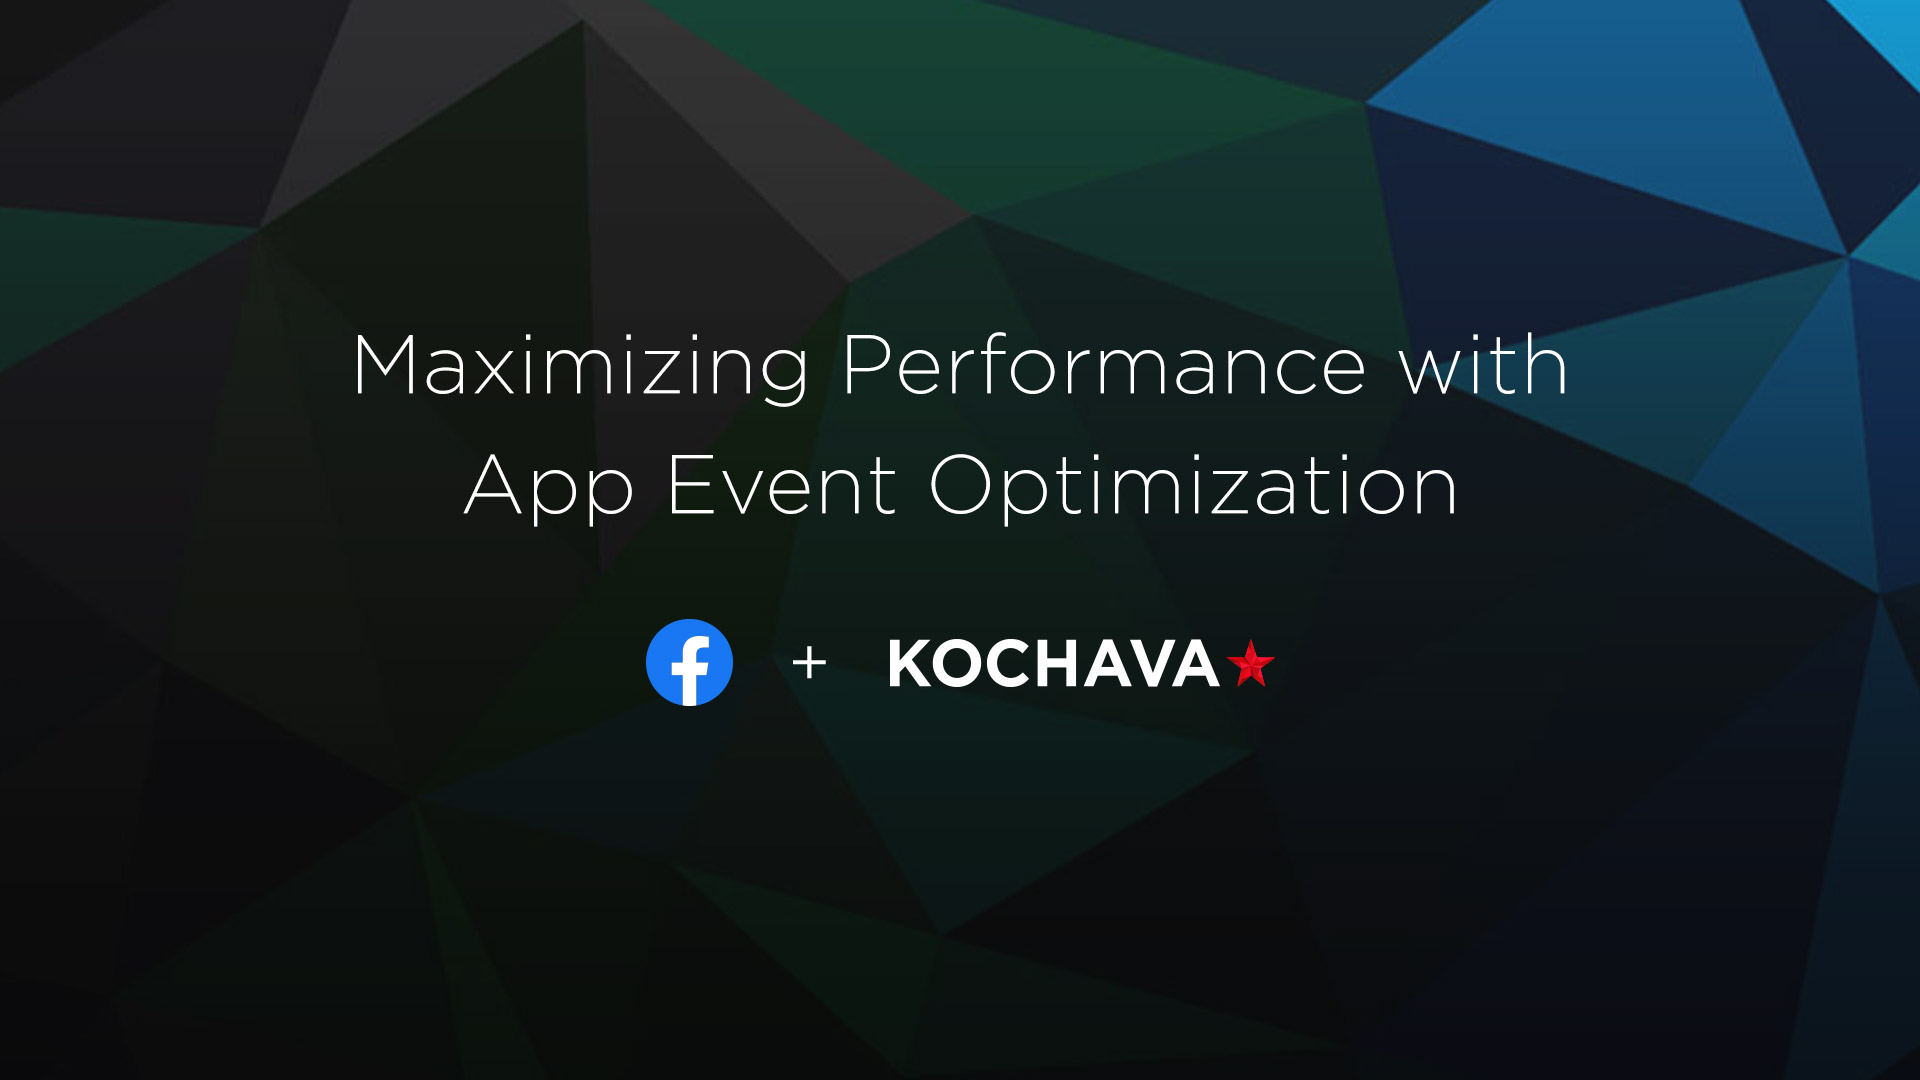 Maximizing performance with App Event Optimization